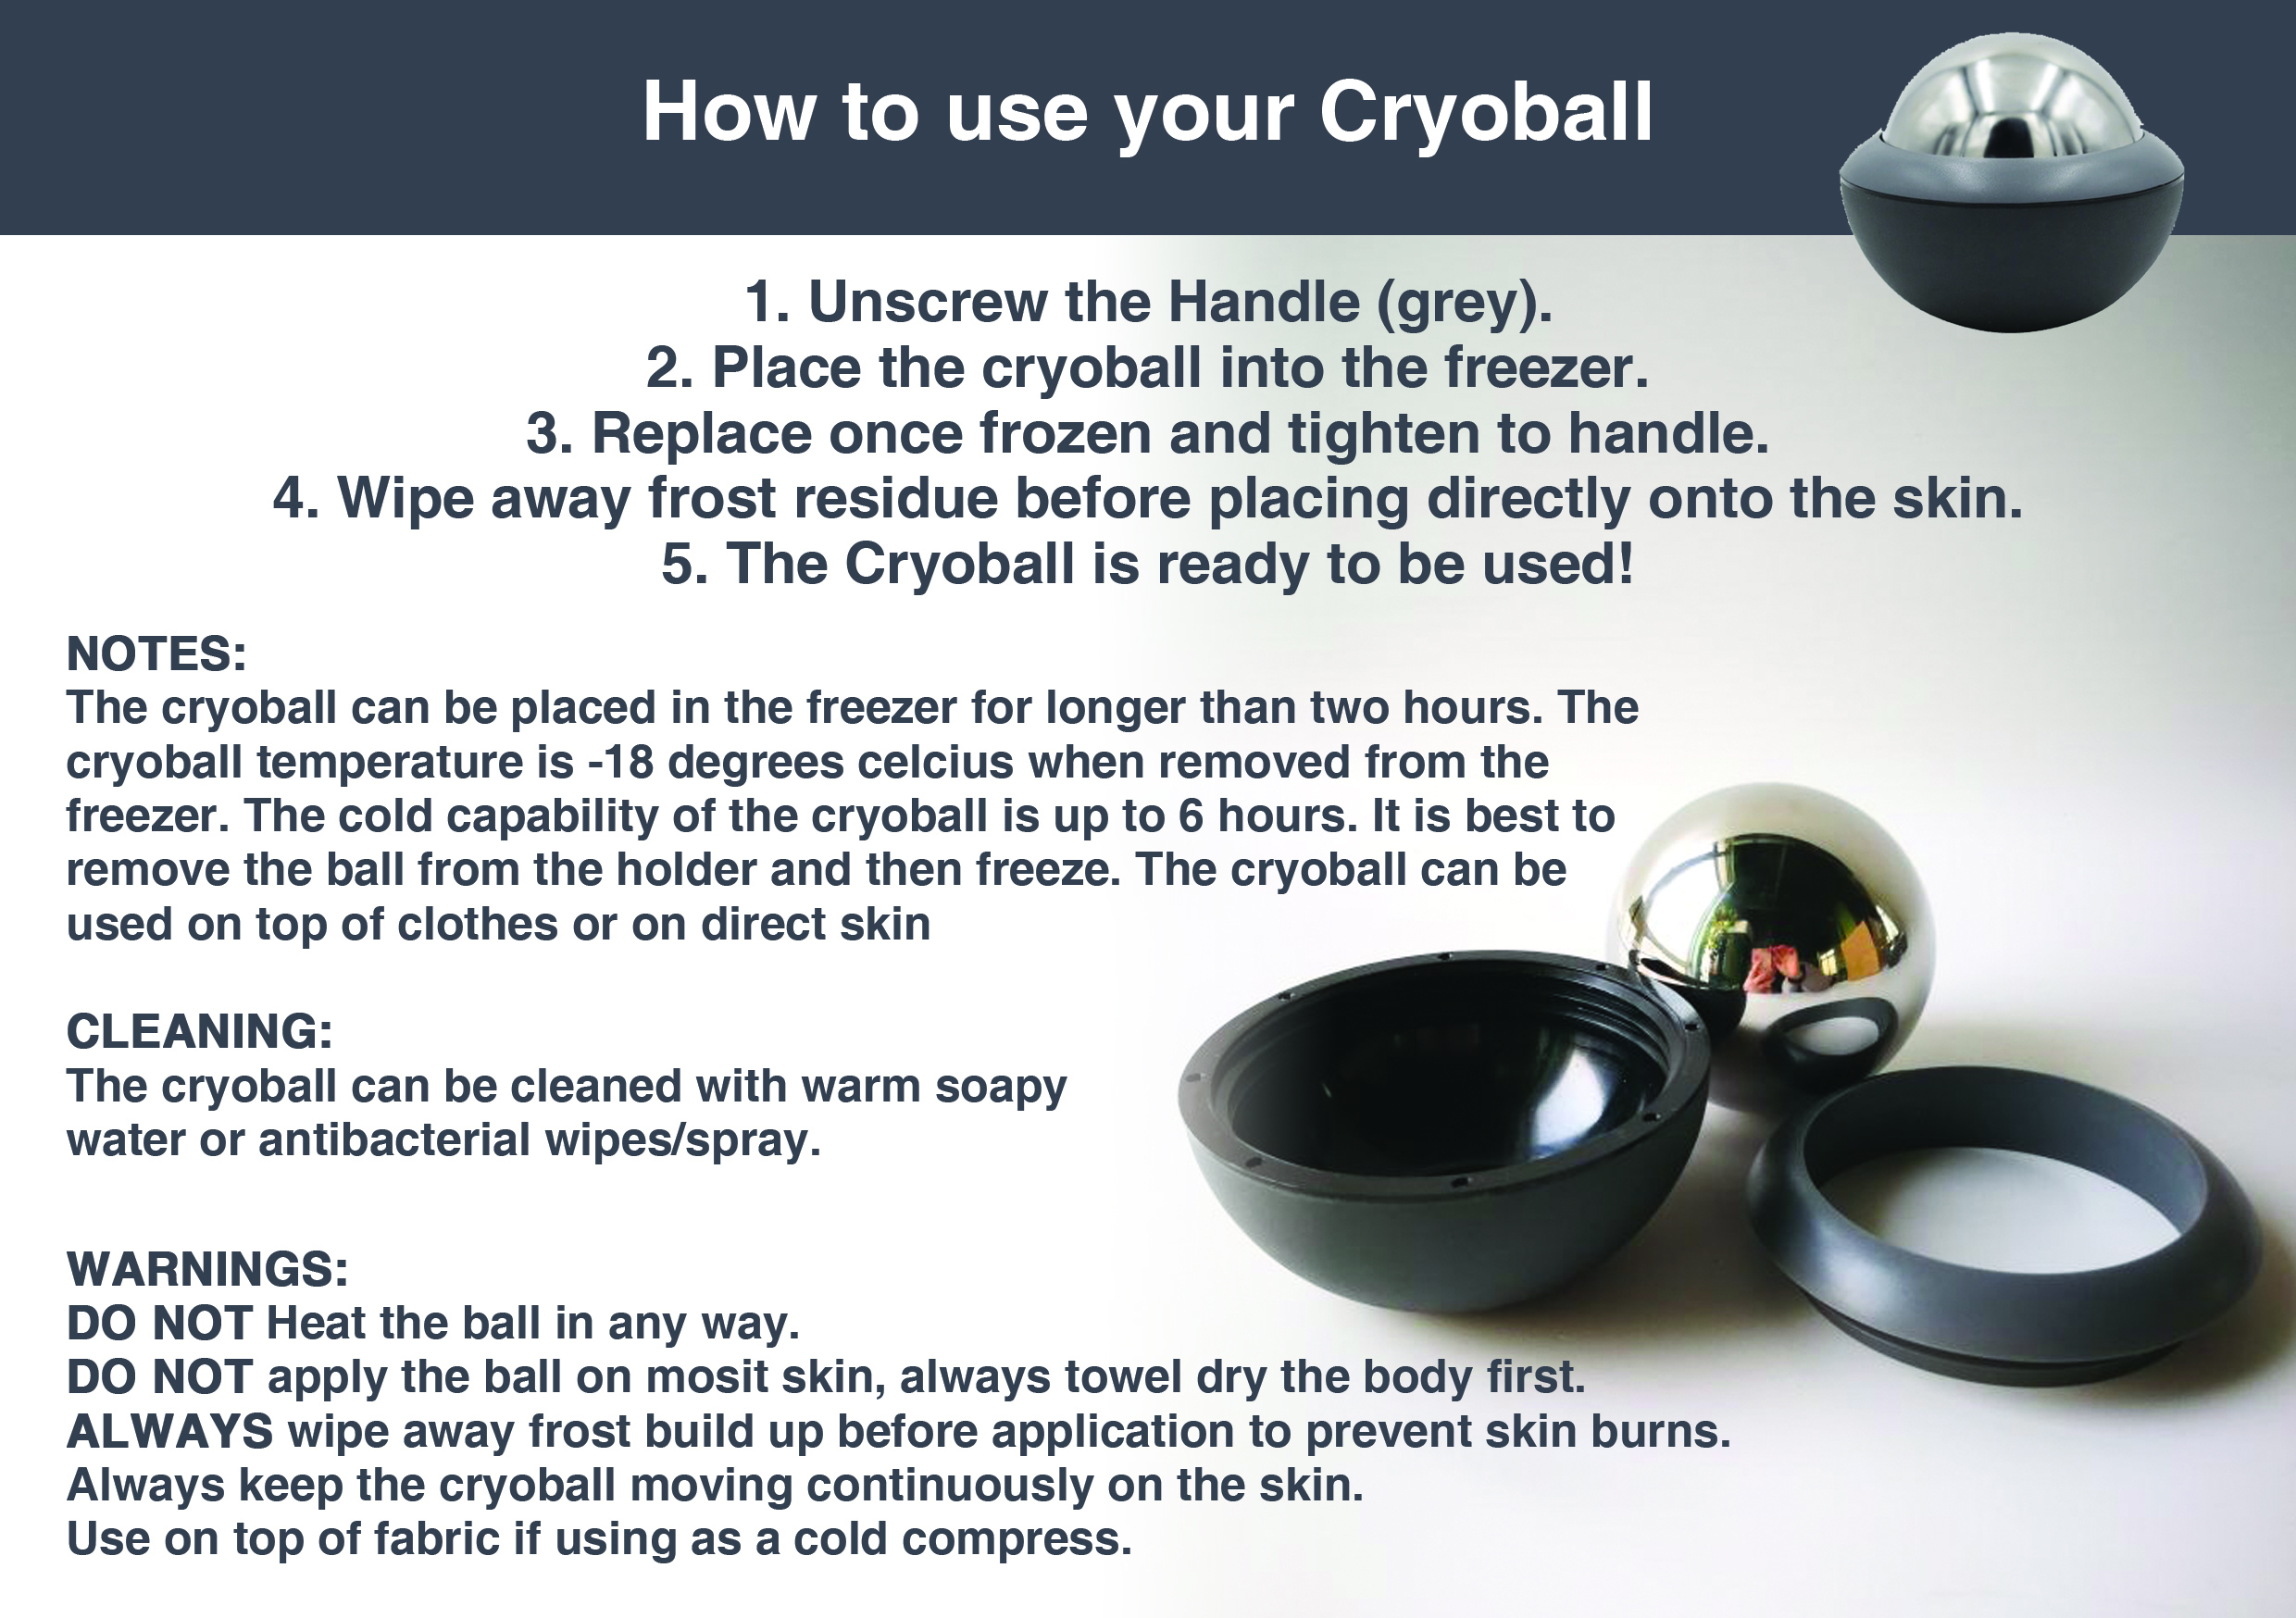 How to use your Cryo ball